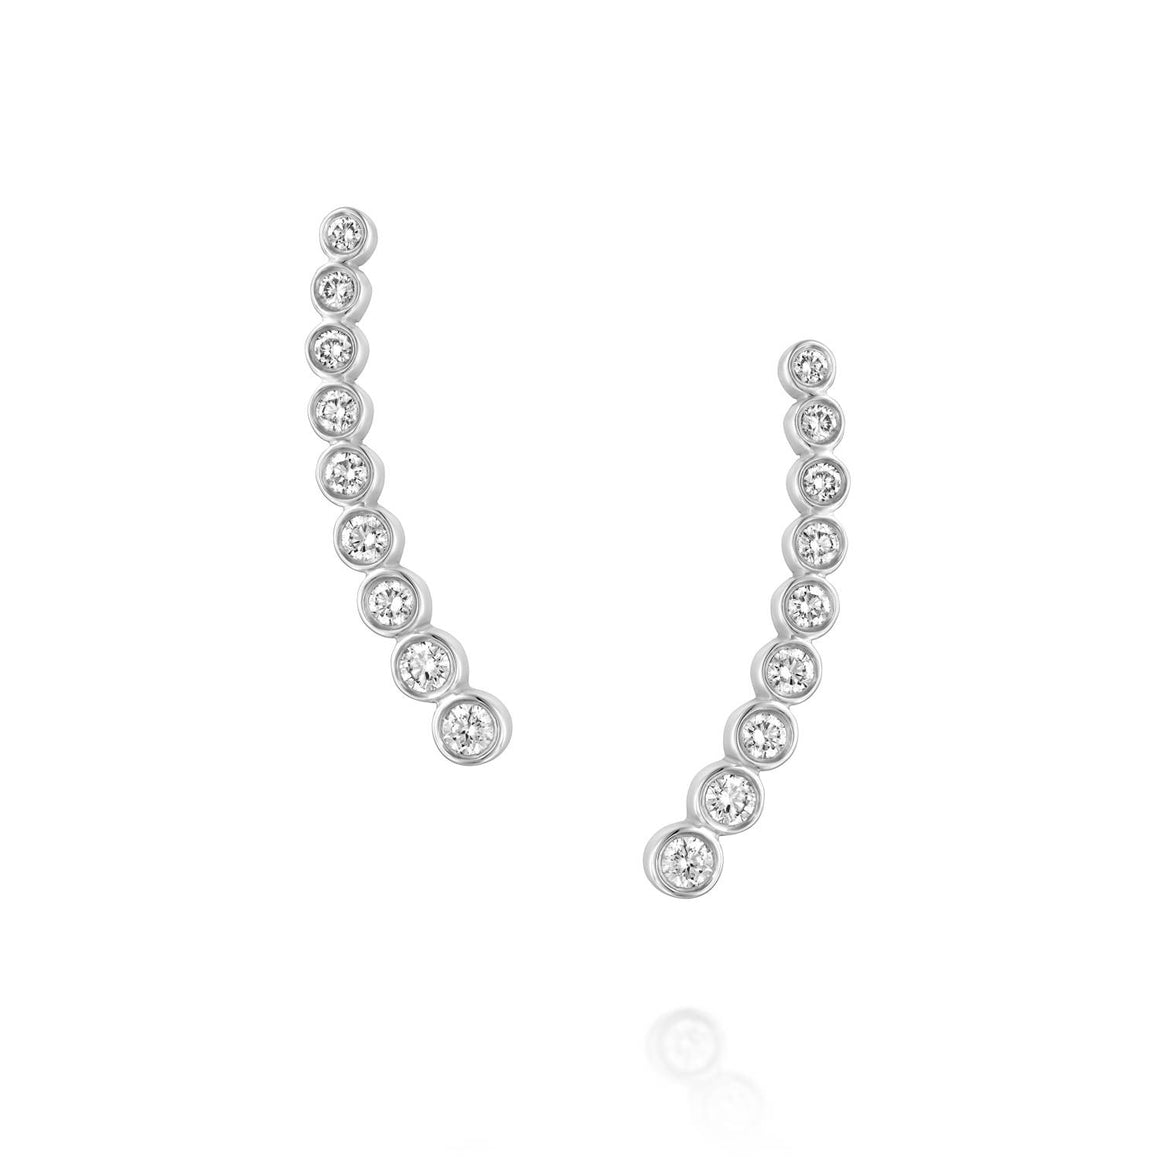 ENH813 Diamond Ear Climber Earrings in 18k White Gold